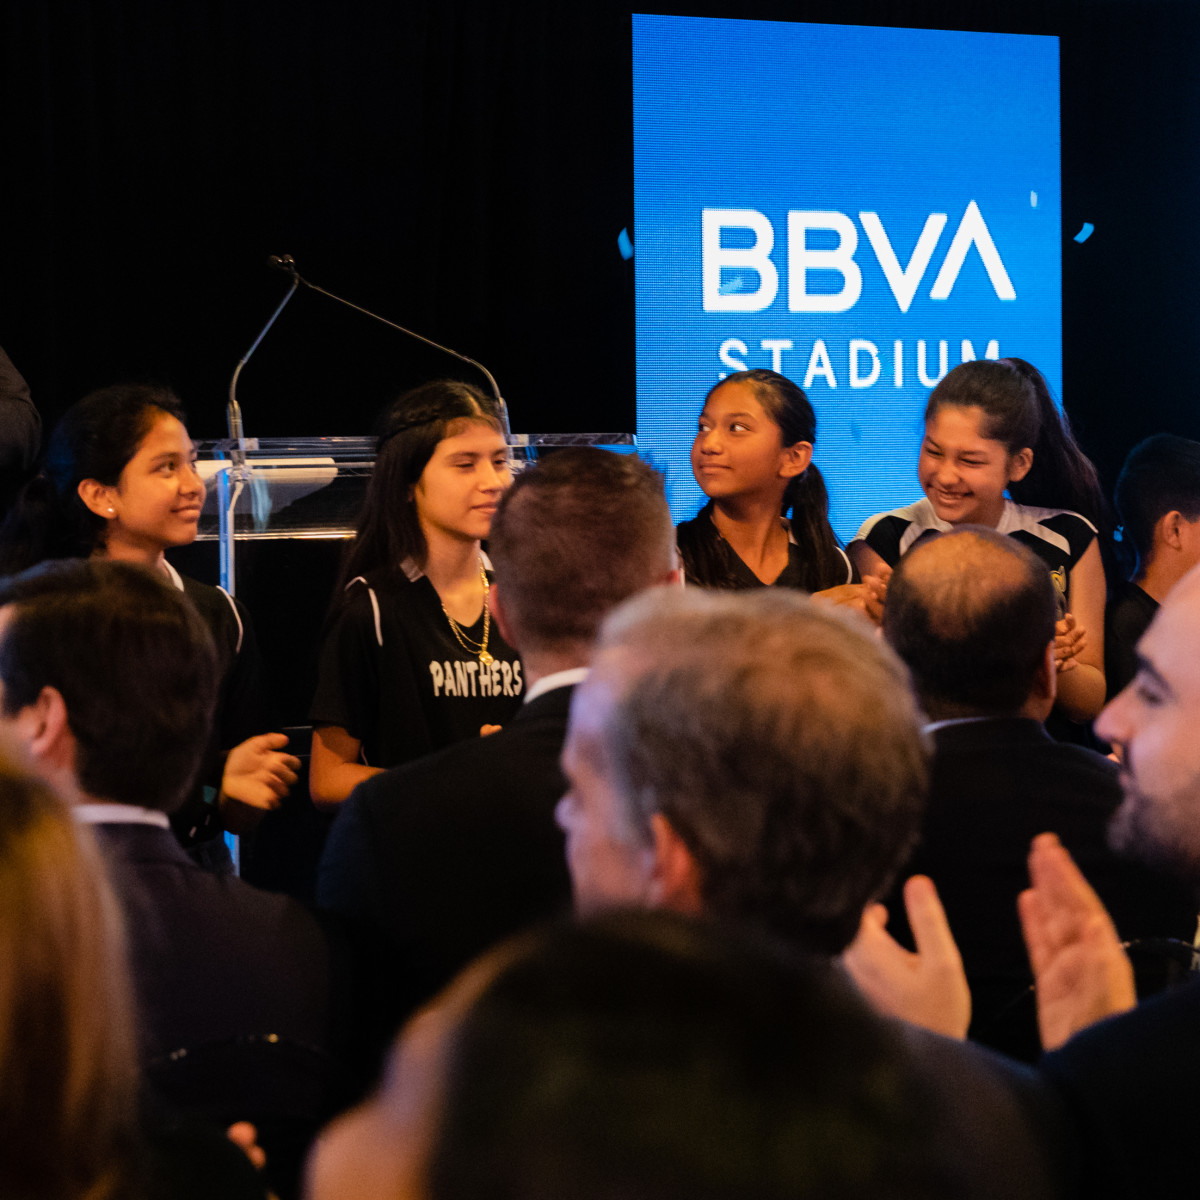 BBVA USA President and CEO Javier Rodriguez Soler officially announces the new BBVA Stadium name, with the help of Raul Yzaguirre Schools for Success Elite STEM Primary Academy soccer players